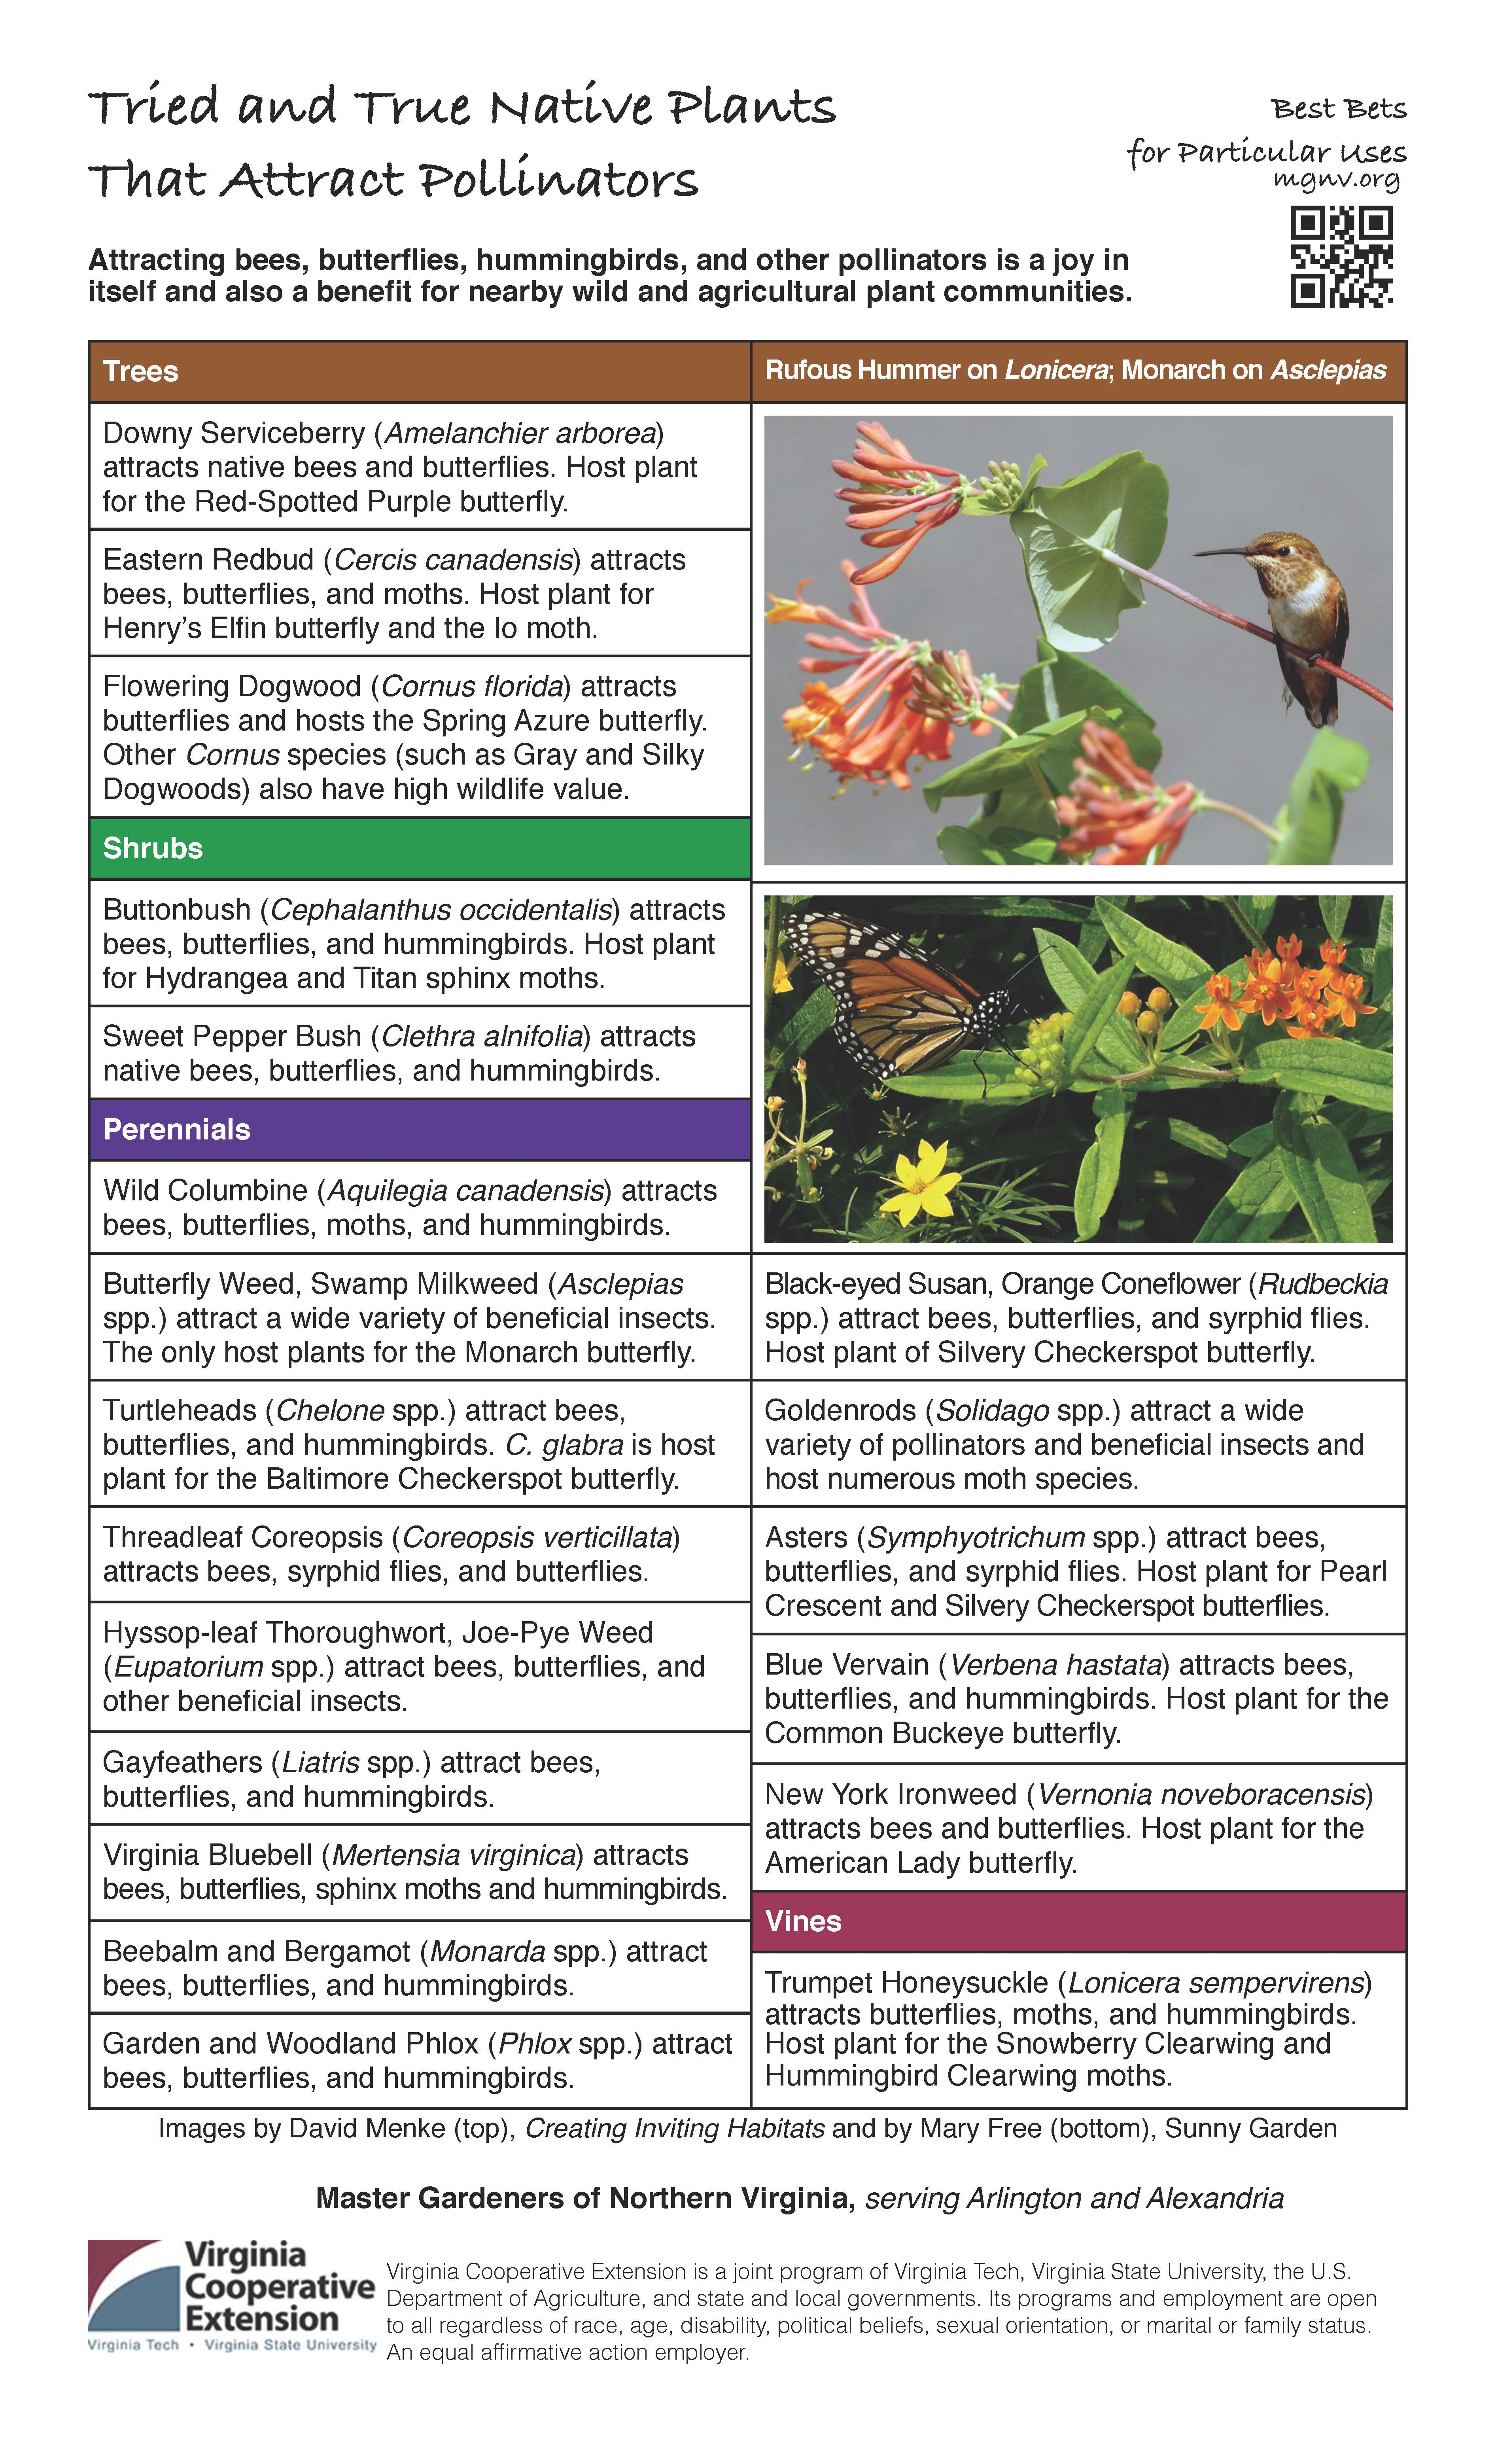 best bets to attract pollinators master gardeners of northern